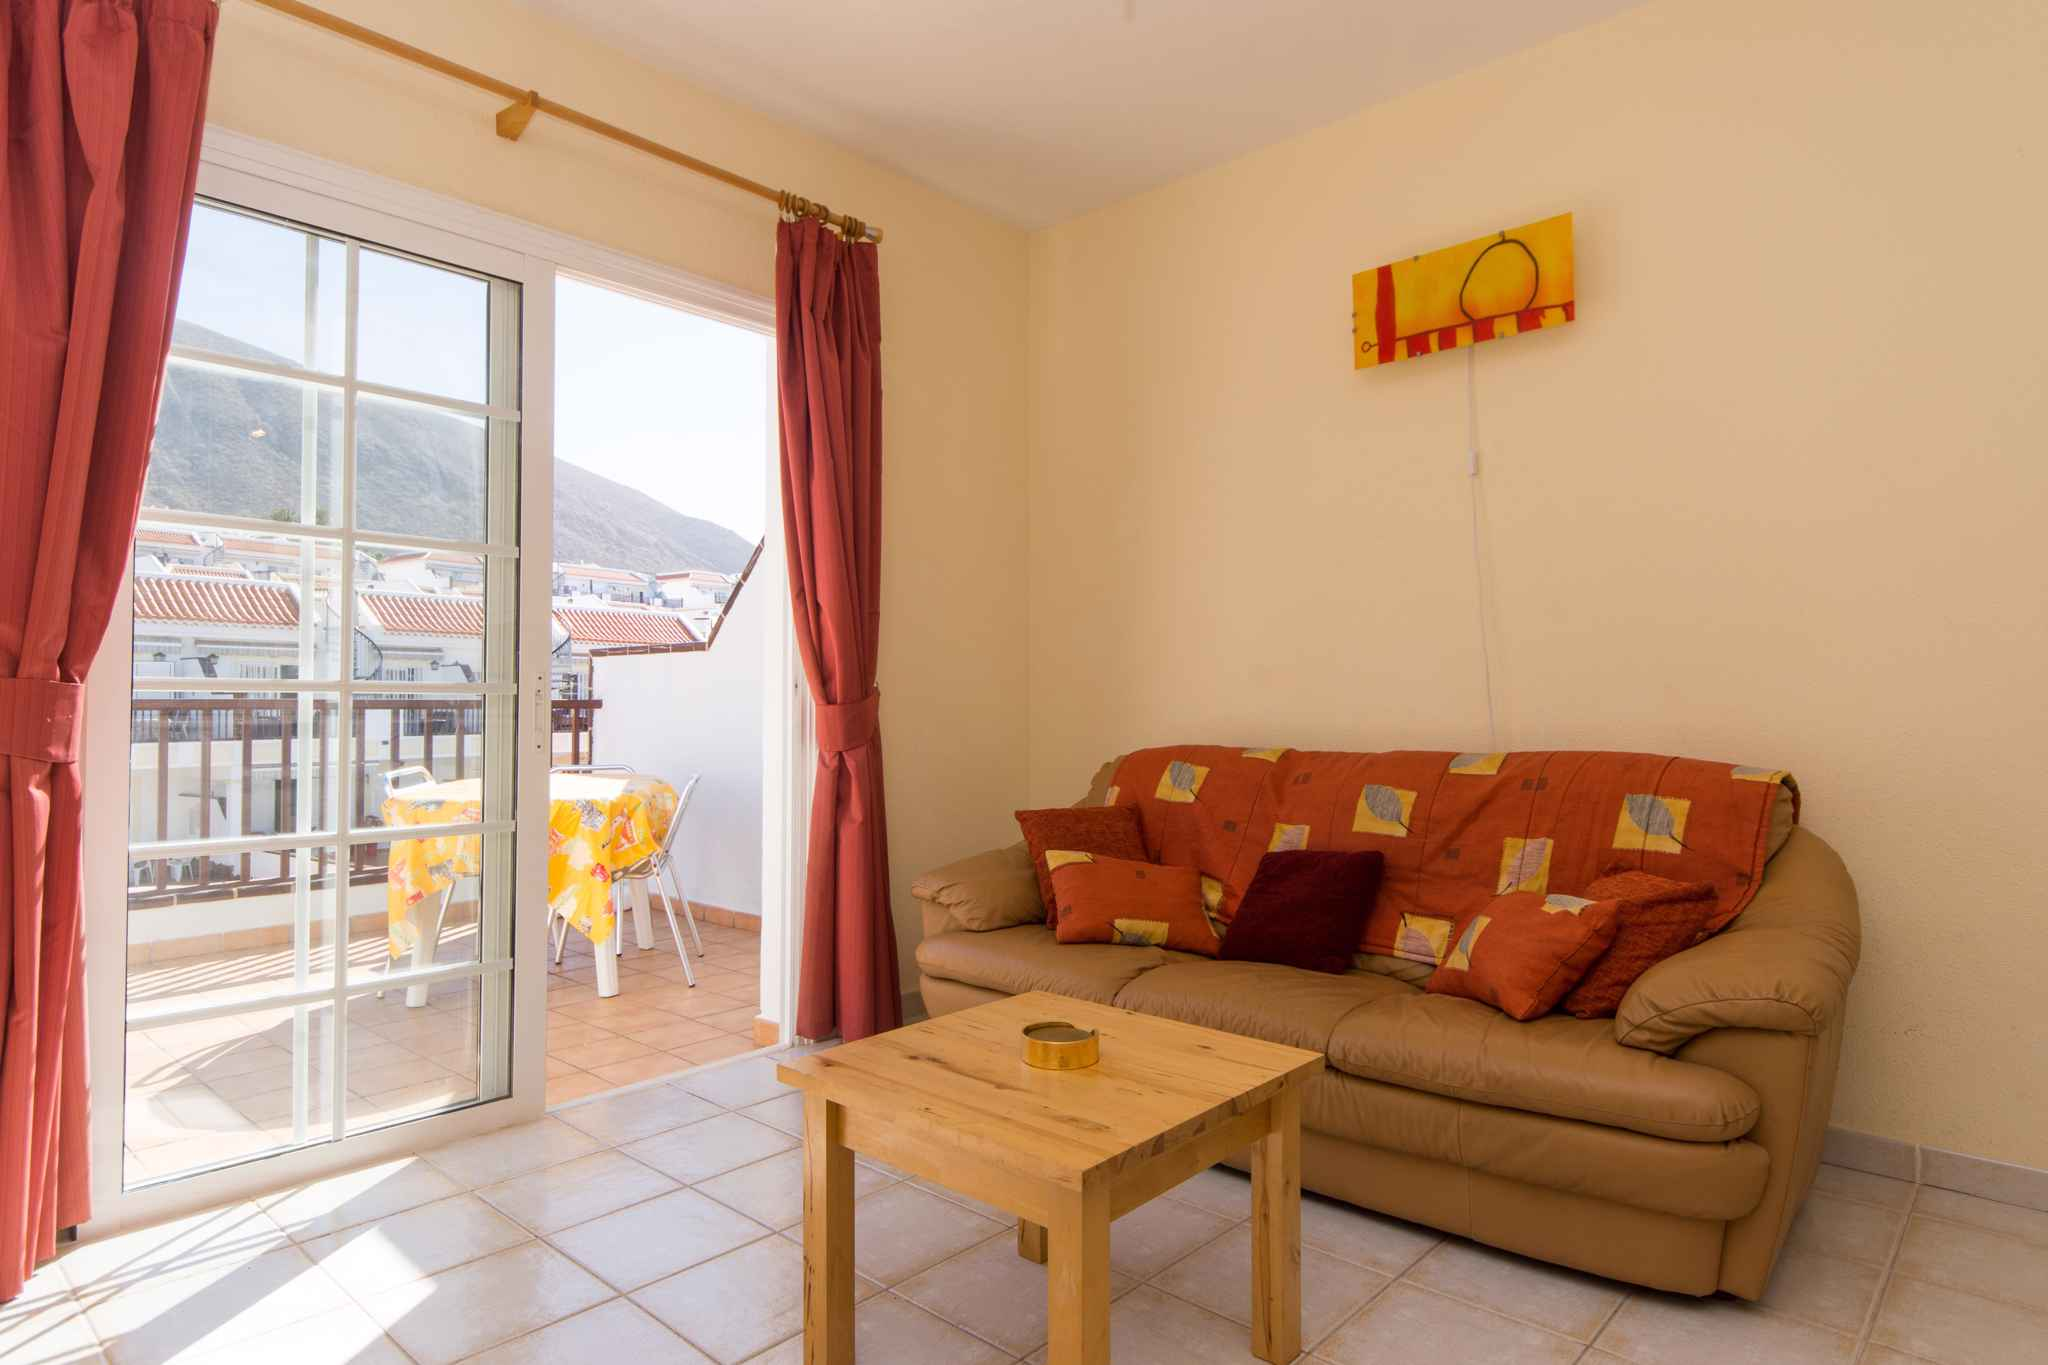 Holiday apartment mit Pool in Ferienanlage (2382979), Los Cristianos, Tenerife, Canary Islands, Spain, picture 17